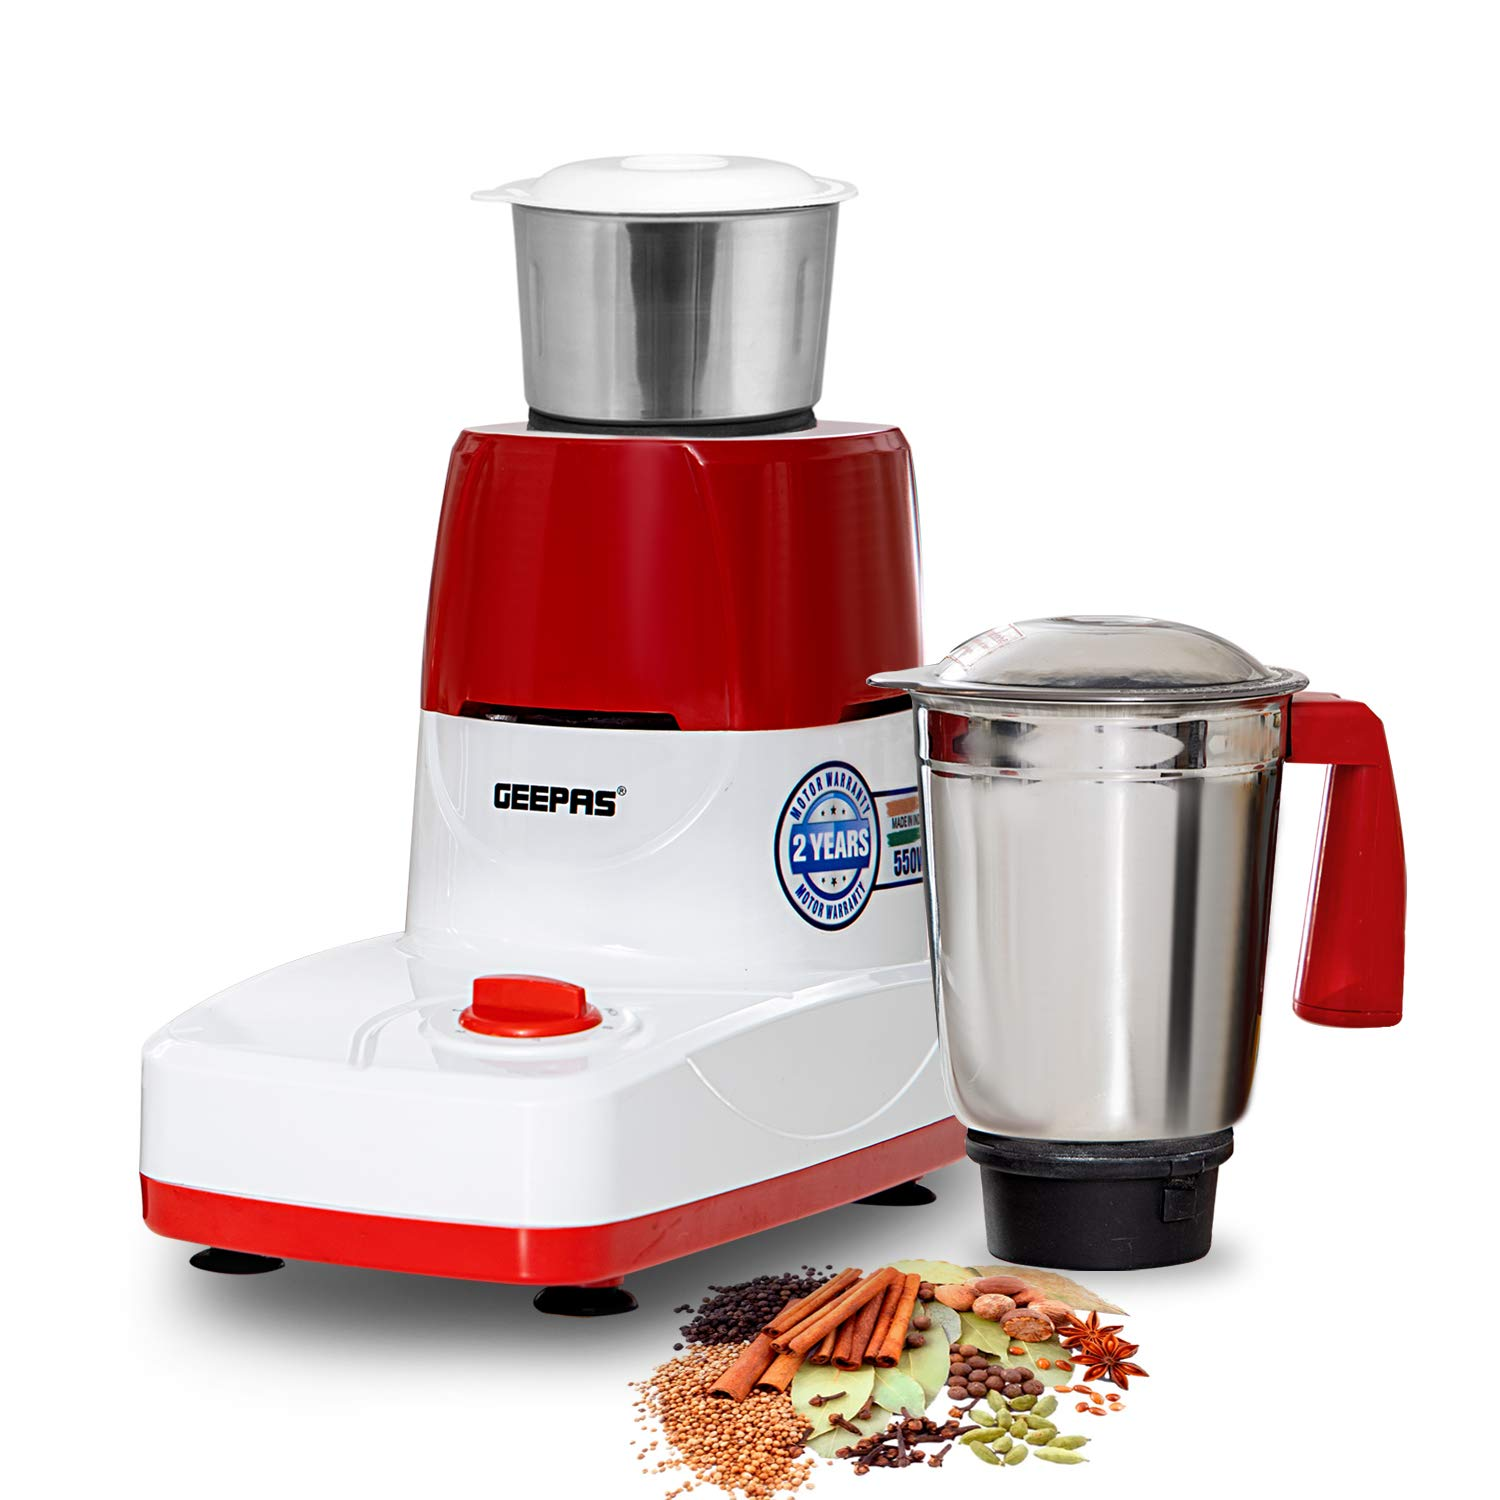 Geepas 550W 2-in-1 Dry & Wet Indian Mixer Grinder – Heavy Duty Electric Grinder with Stainless Steel Jars & Blades – Perfect for Fine Grinding Mixing Chopping – 2 Years Warranty